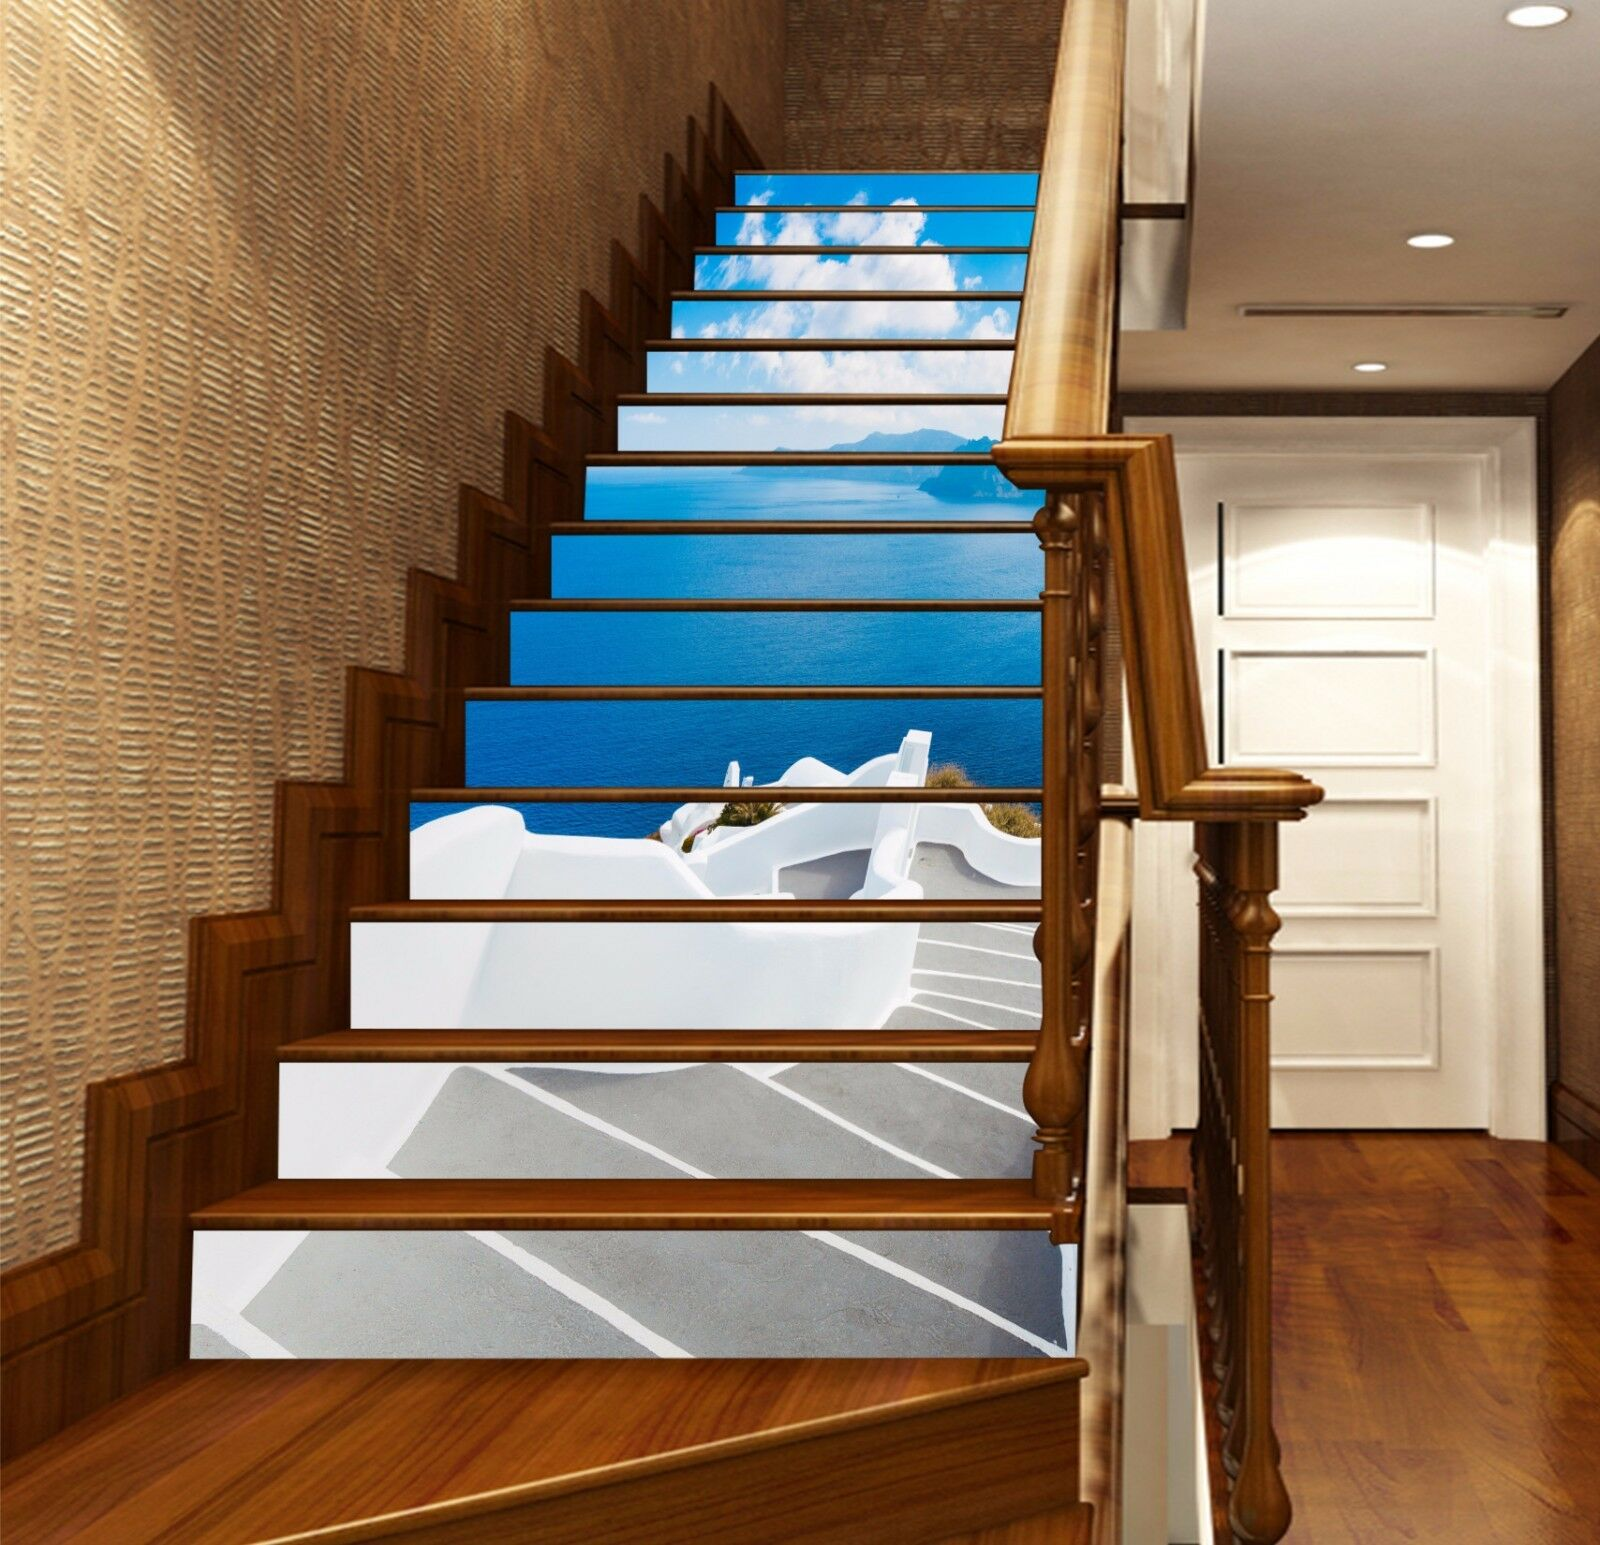 3D Seaside Stairs 8 Stair Risers Decoration Photo Mural Vinyl Decal Wallpaper AU